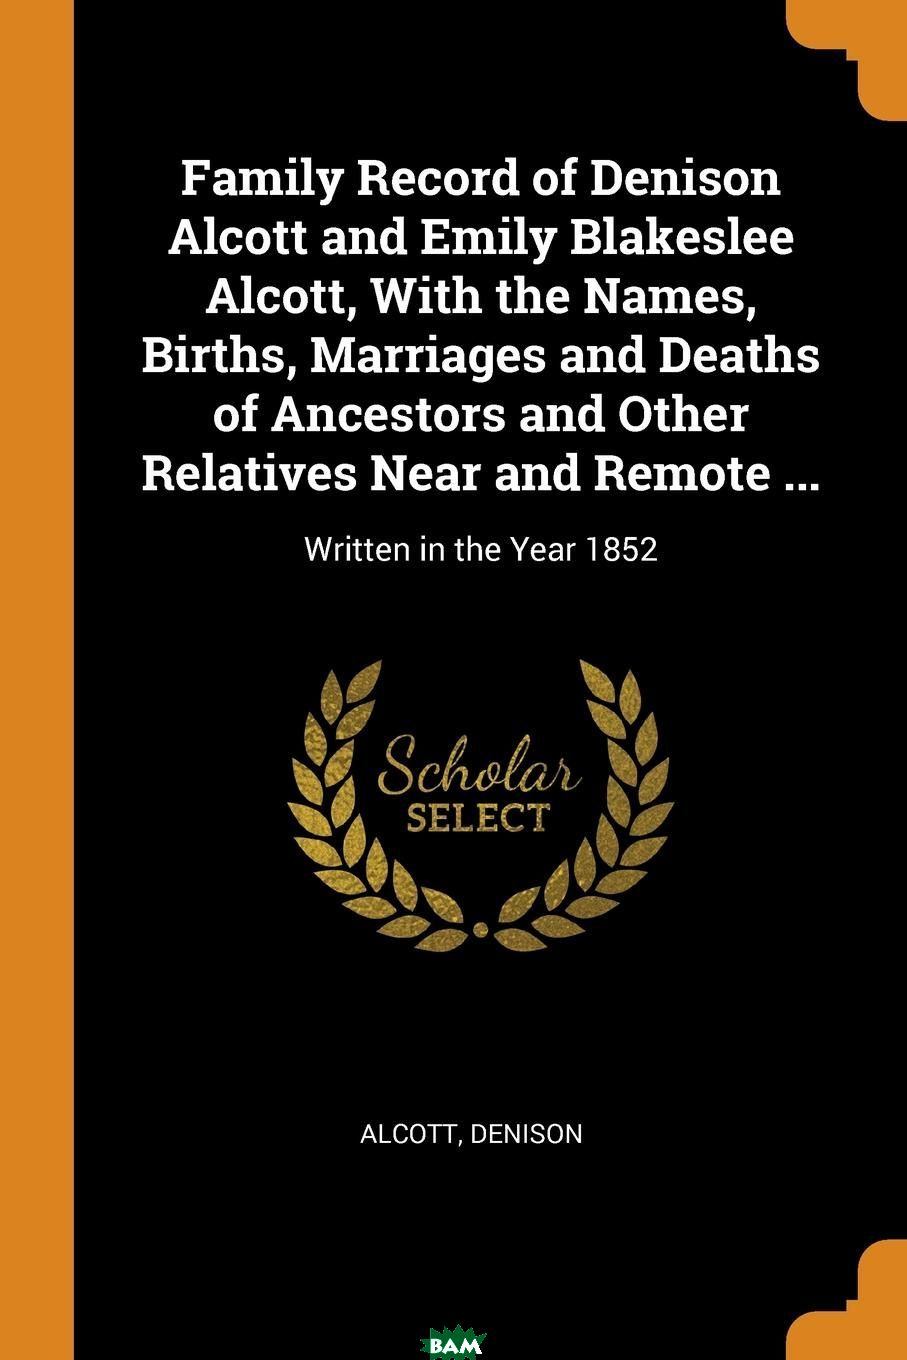 Купить Family Record of Denison Alcott and Emily Blakeslee Alcott, With the Names, Births, Marriages and Deaths of Ancestors and Other Relatives Near and Remote ... Written in the Year 1852, Alcott Denison, 9780353149267